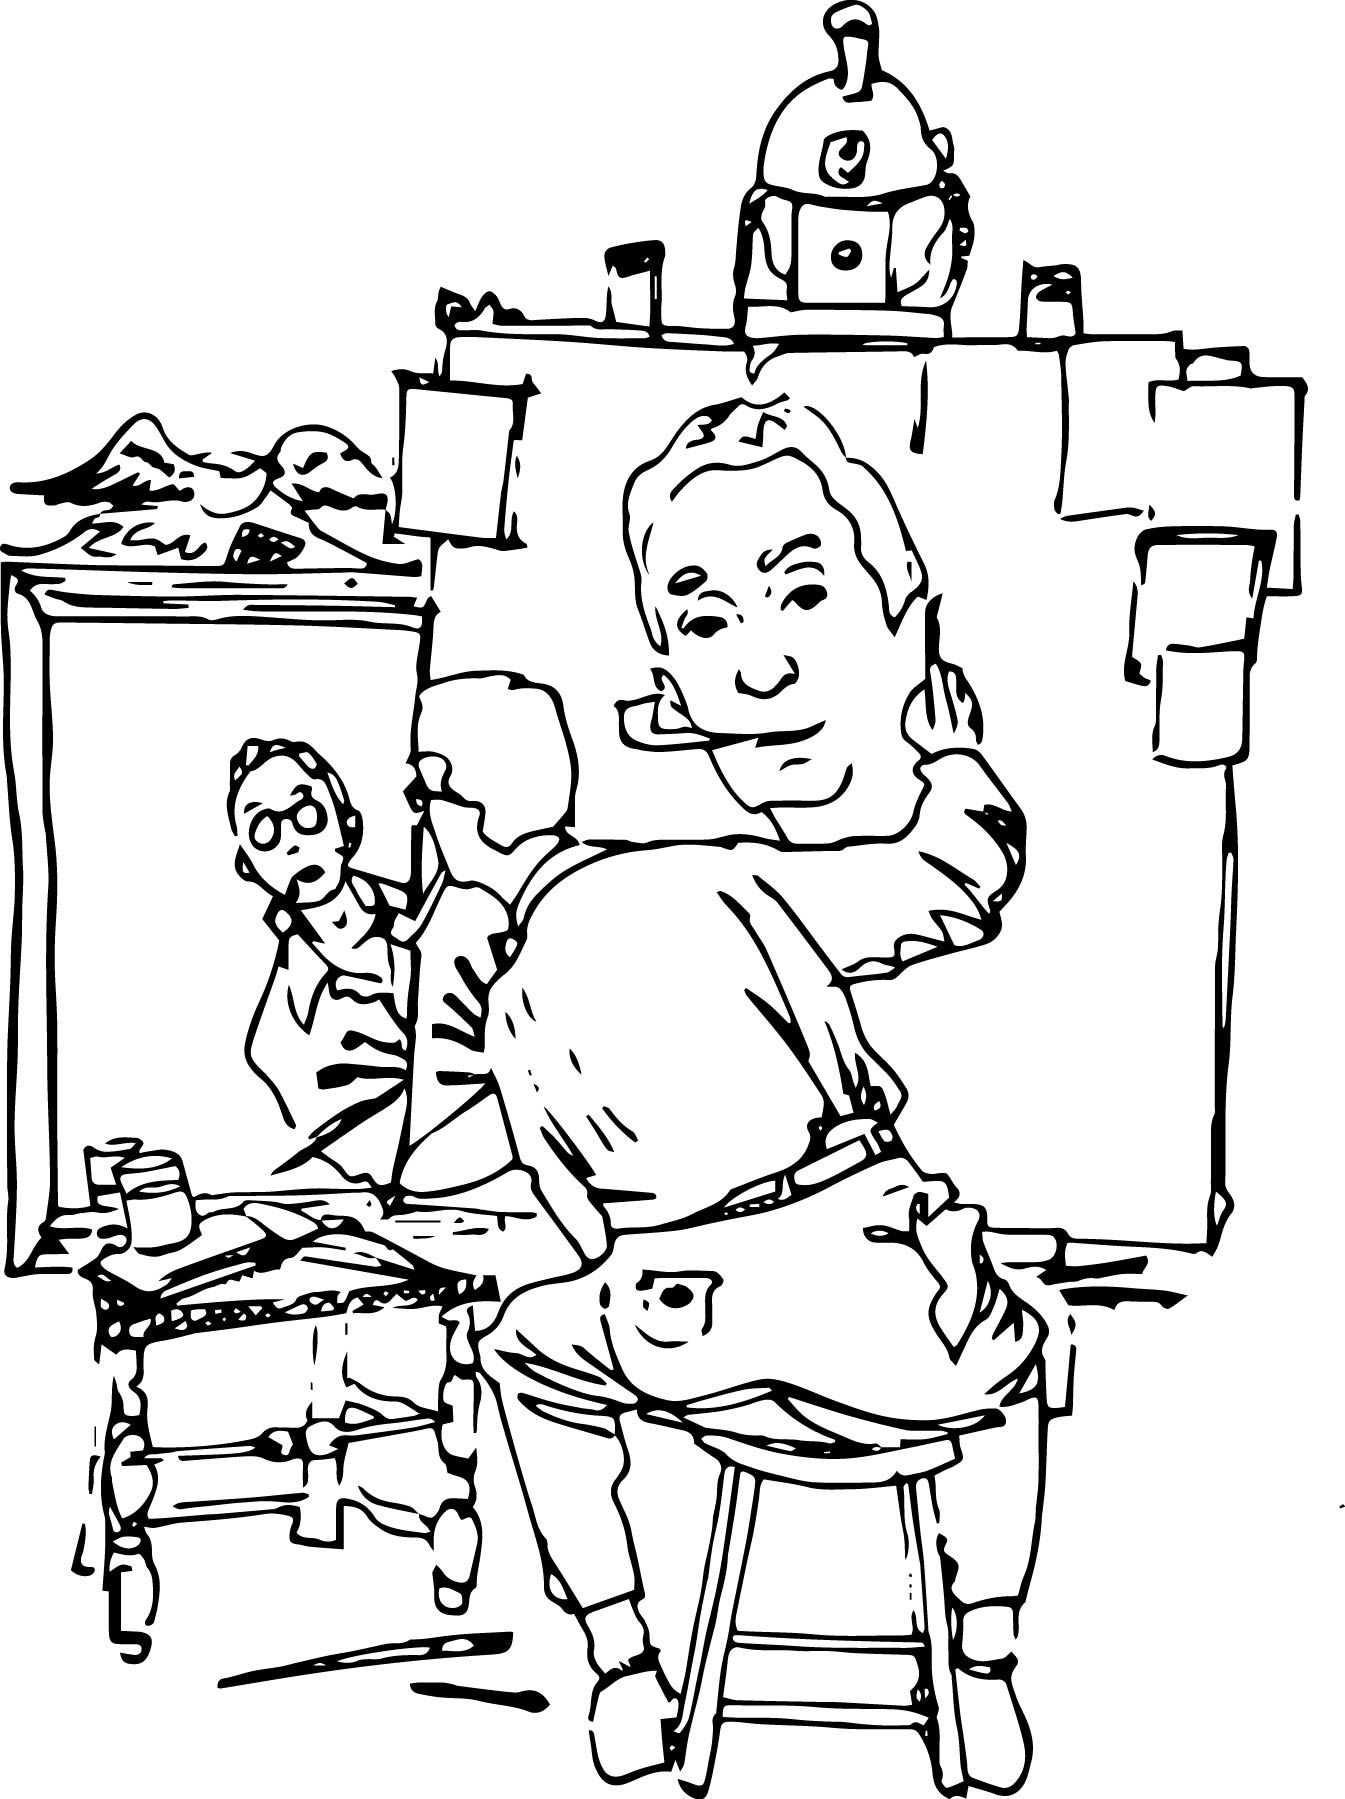 norman rockwell coloring pages - photo#1